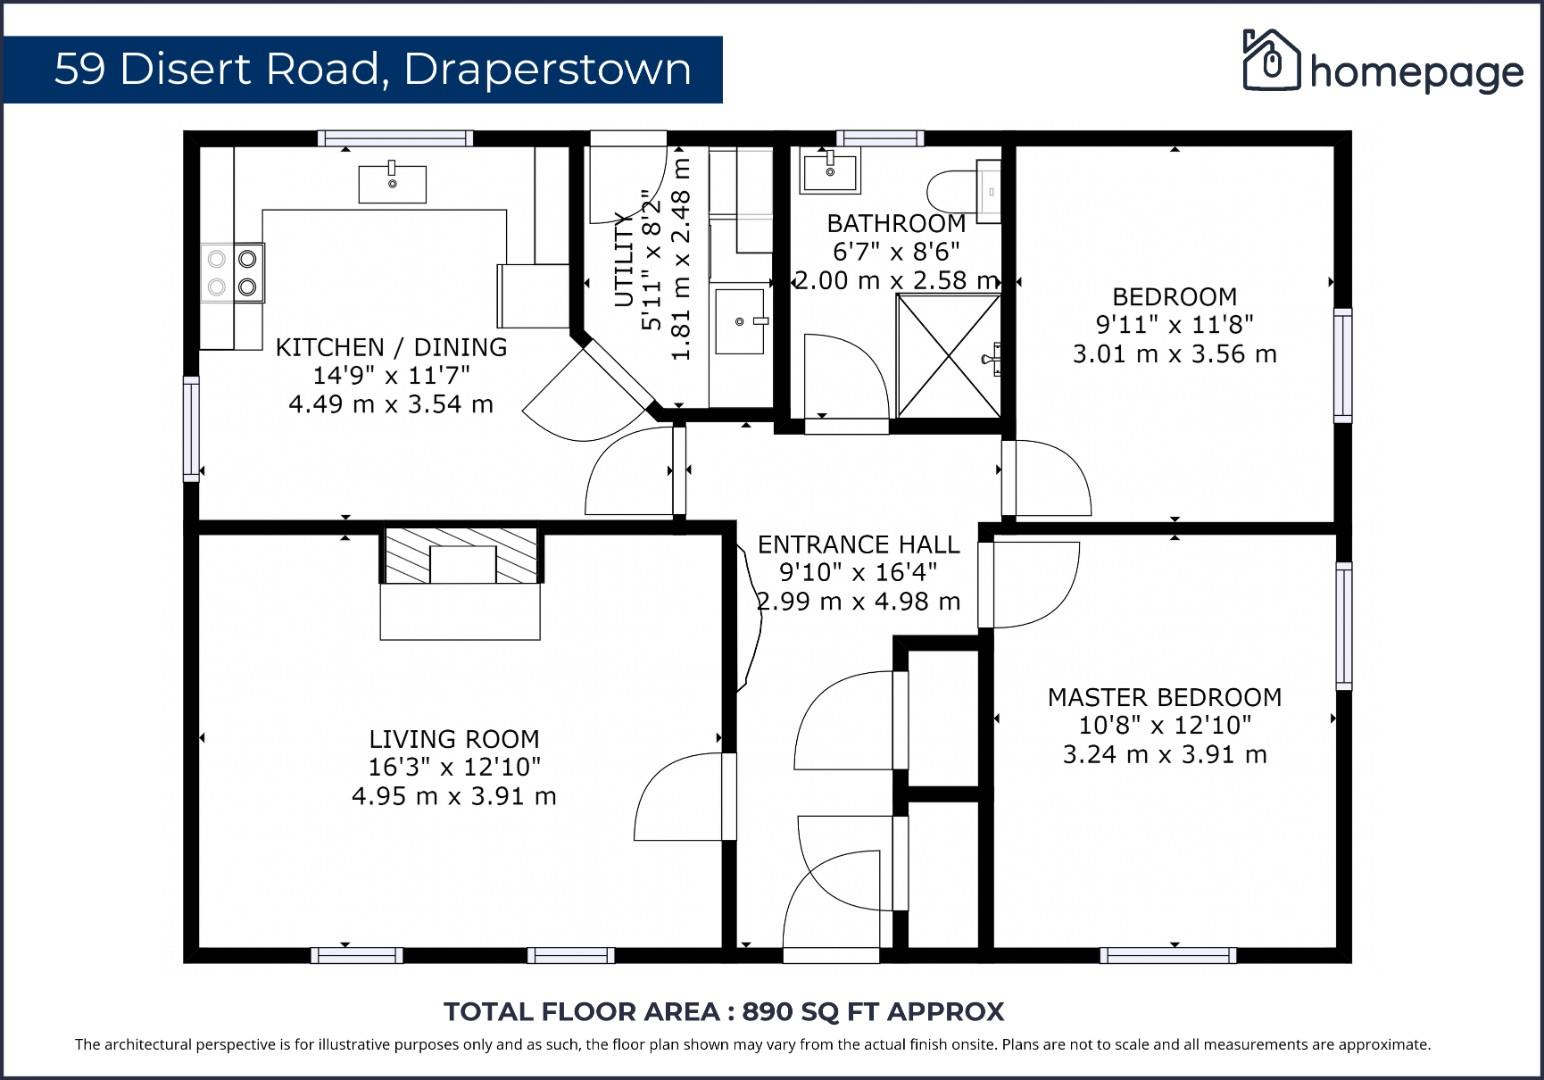 59 Disert Road Floor Plan.jpg